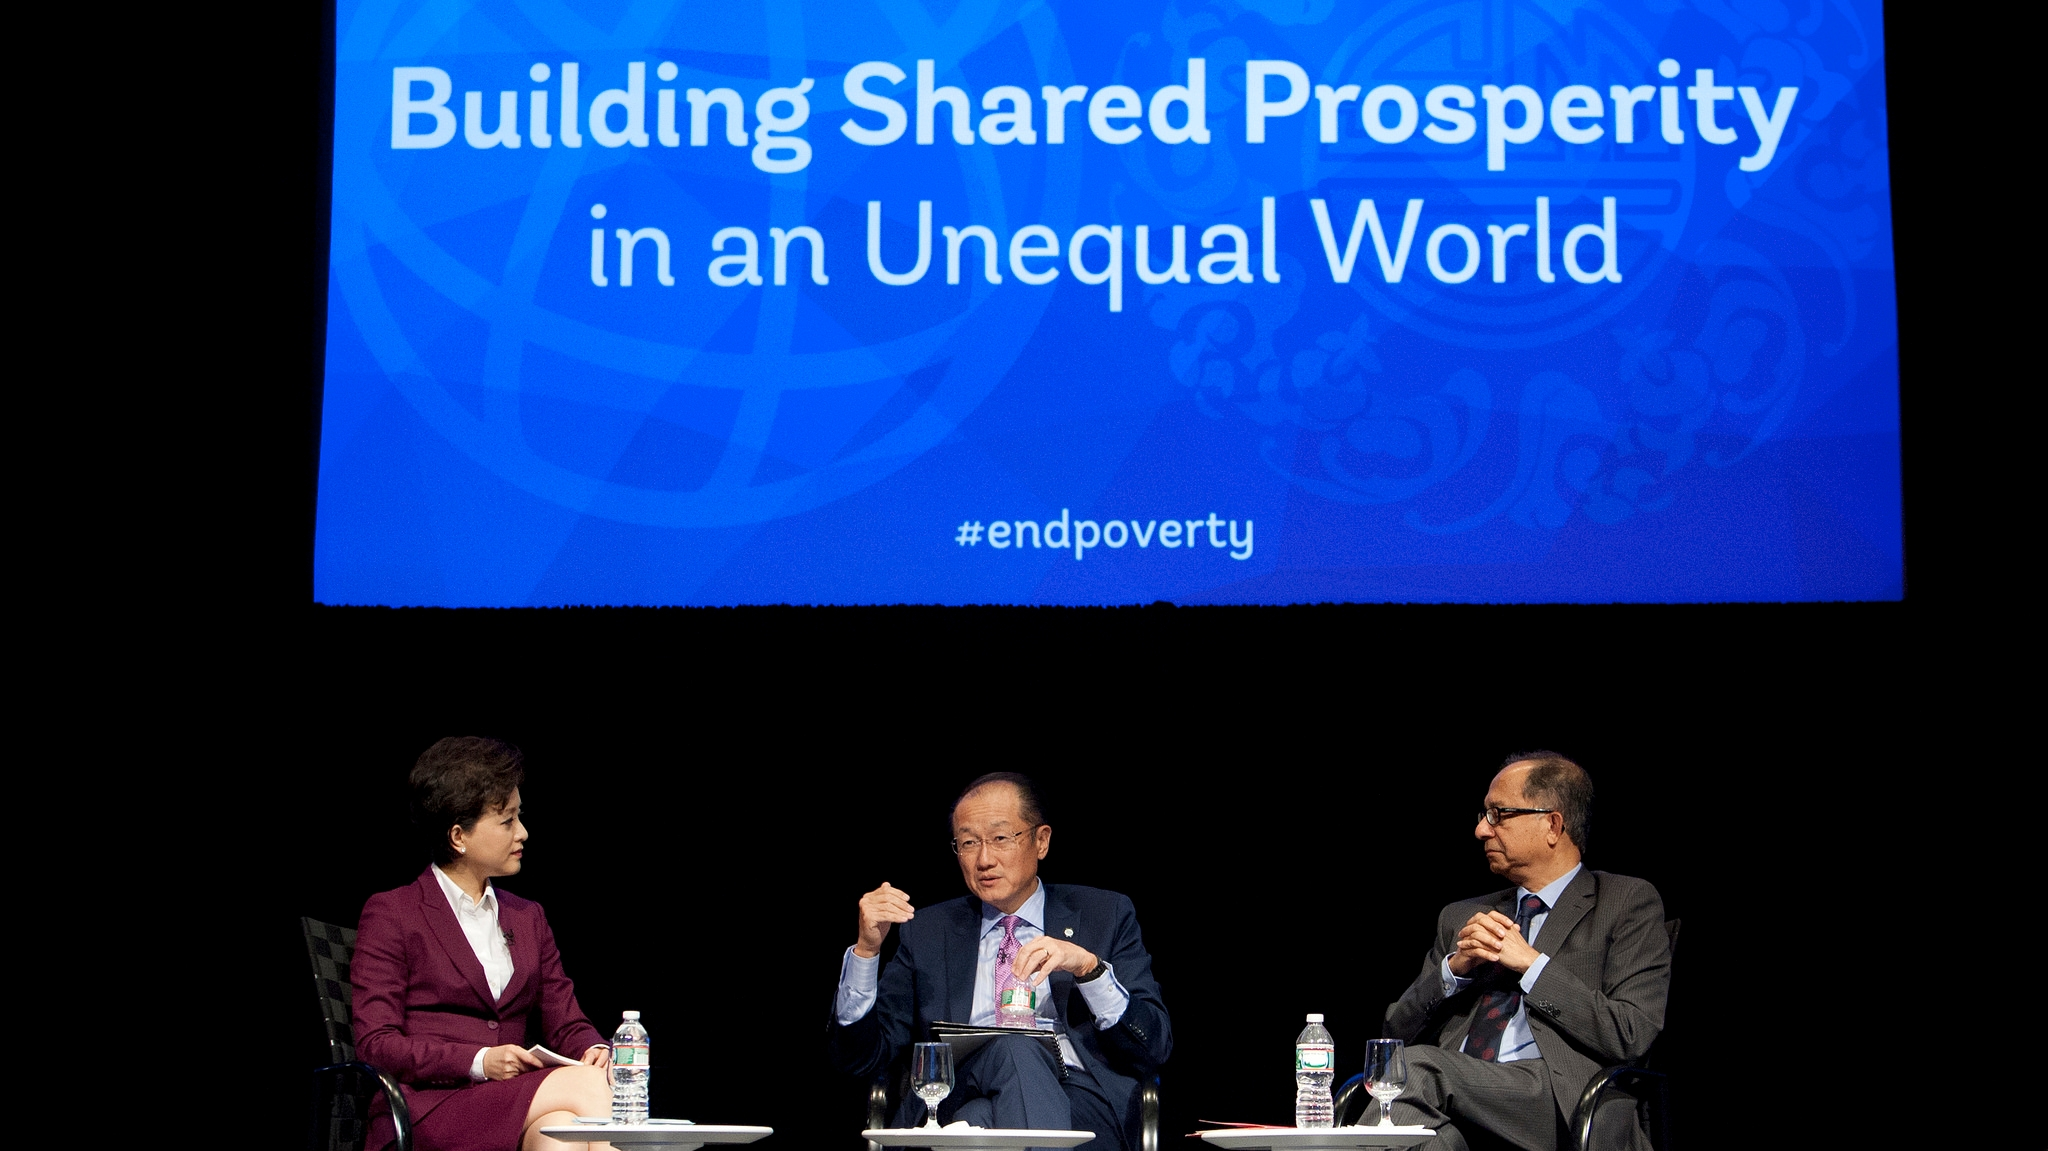 Building Shared Prosperity in an Unequal World